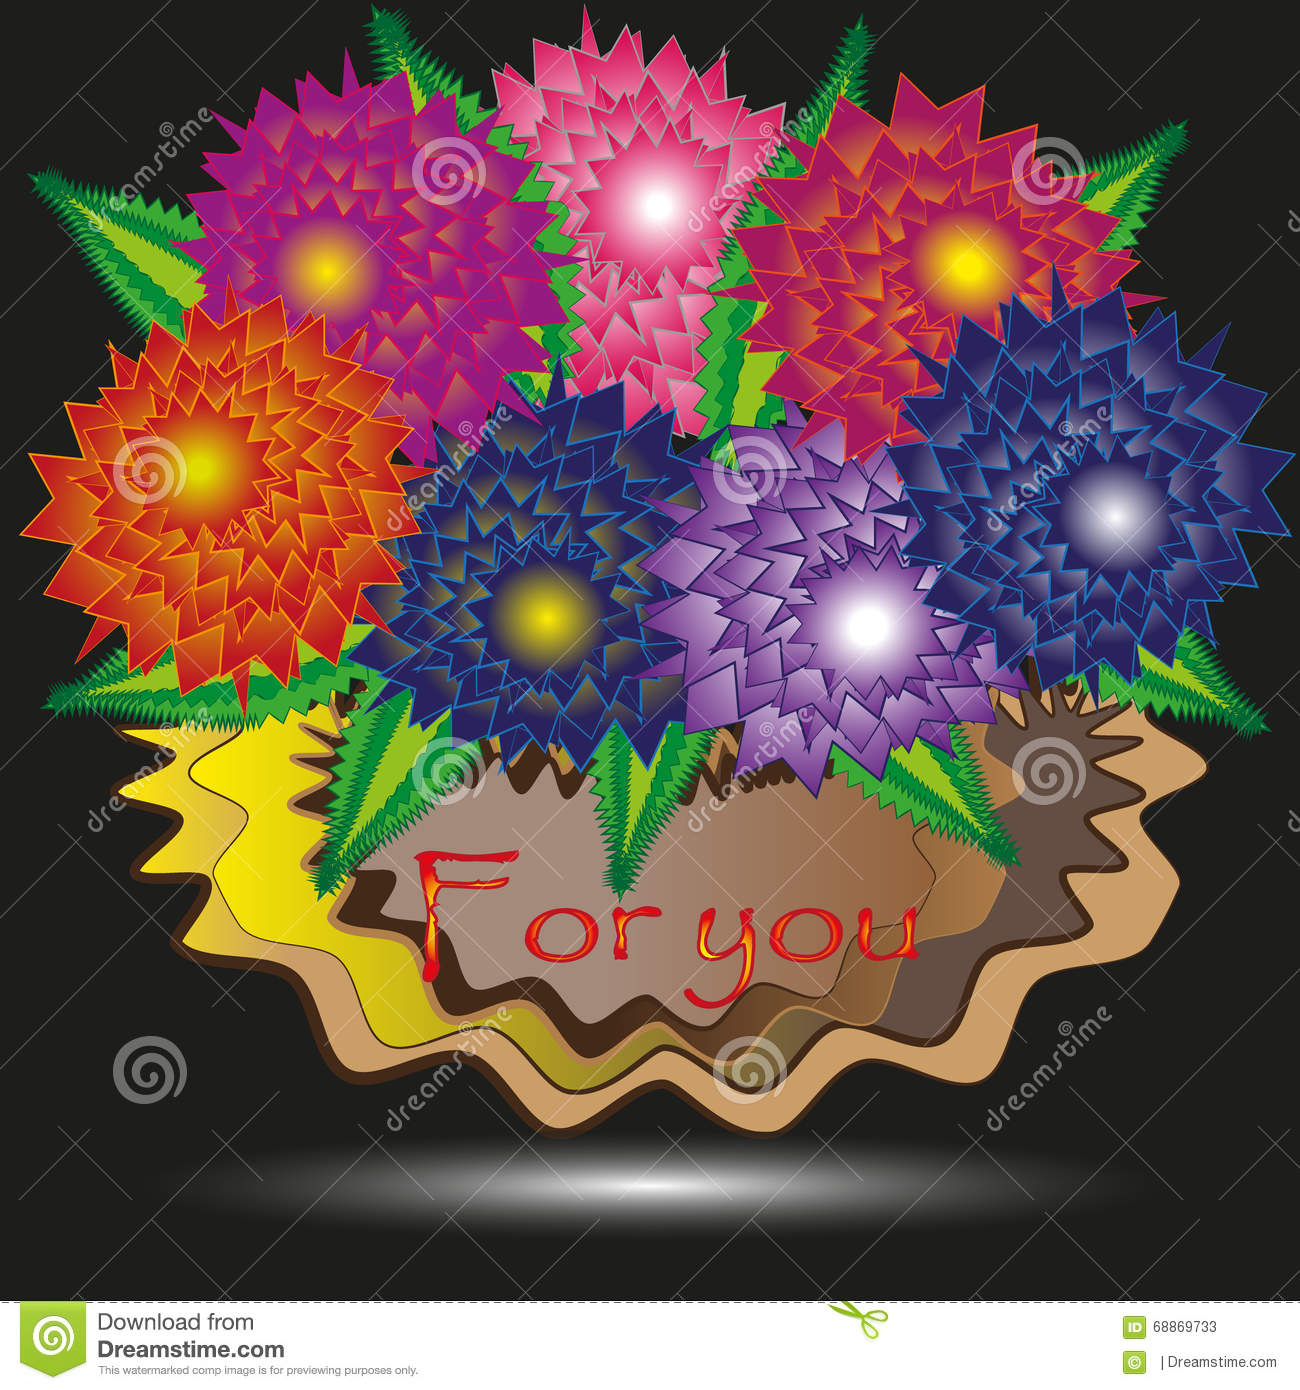 Picture of a big bunch of flowers jpg transparent stock Abstraction For You Big Bunch Of Flowers Stock Vector - Image ... jpg transparent stock